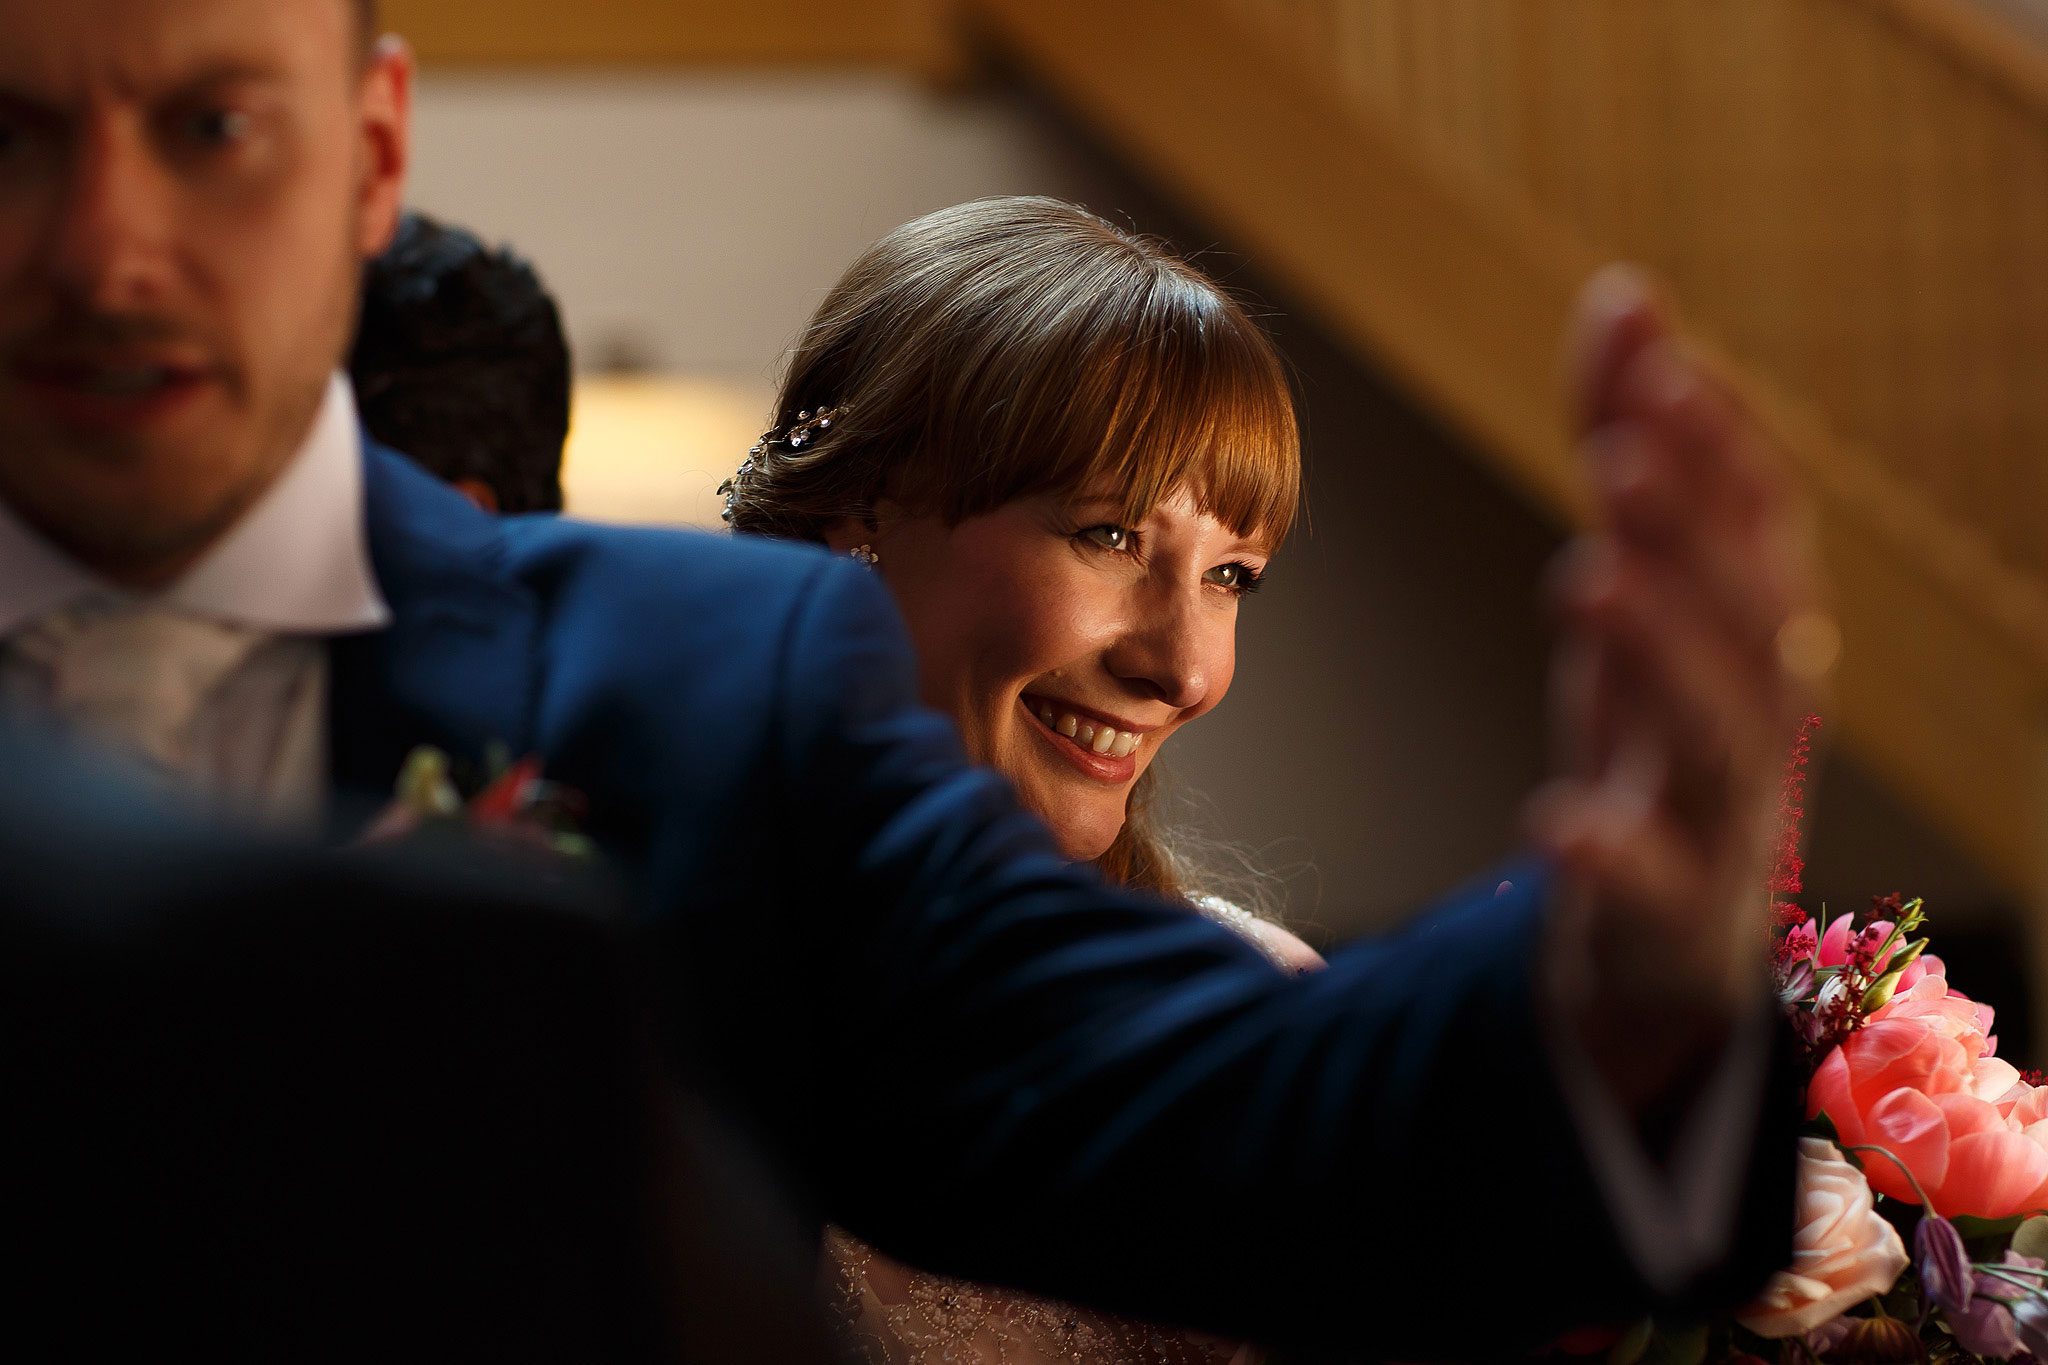 Bride with fringe smiling - The Villa at Wrea Green Wedding Photography - Toni Darcy Photography